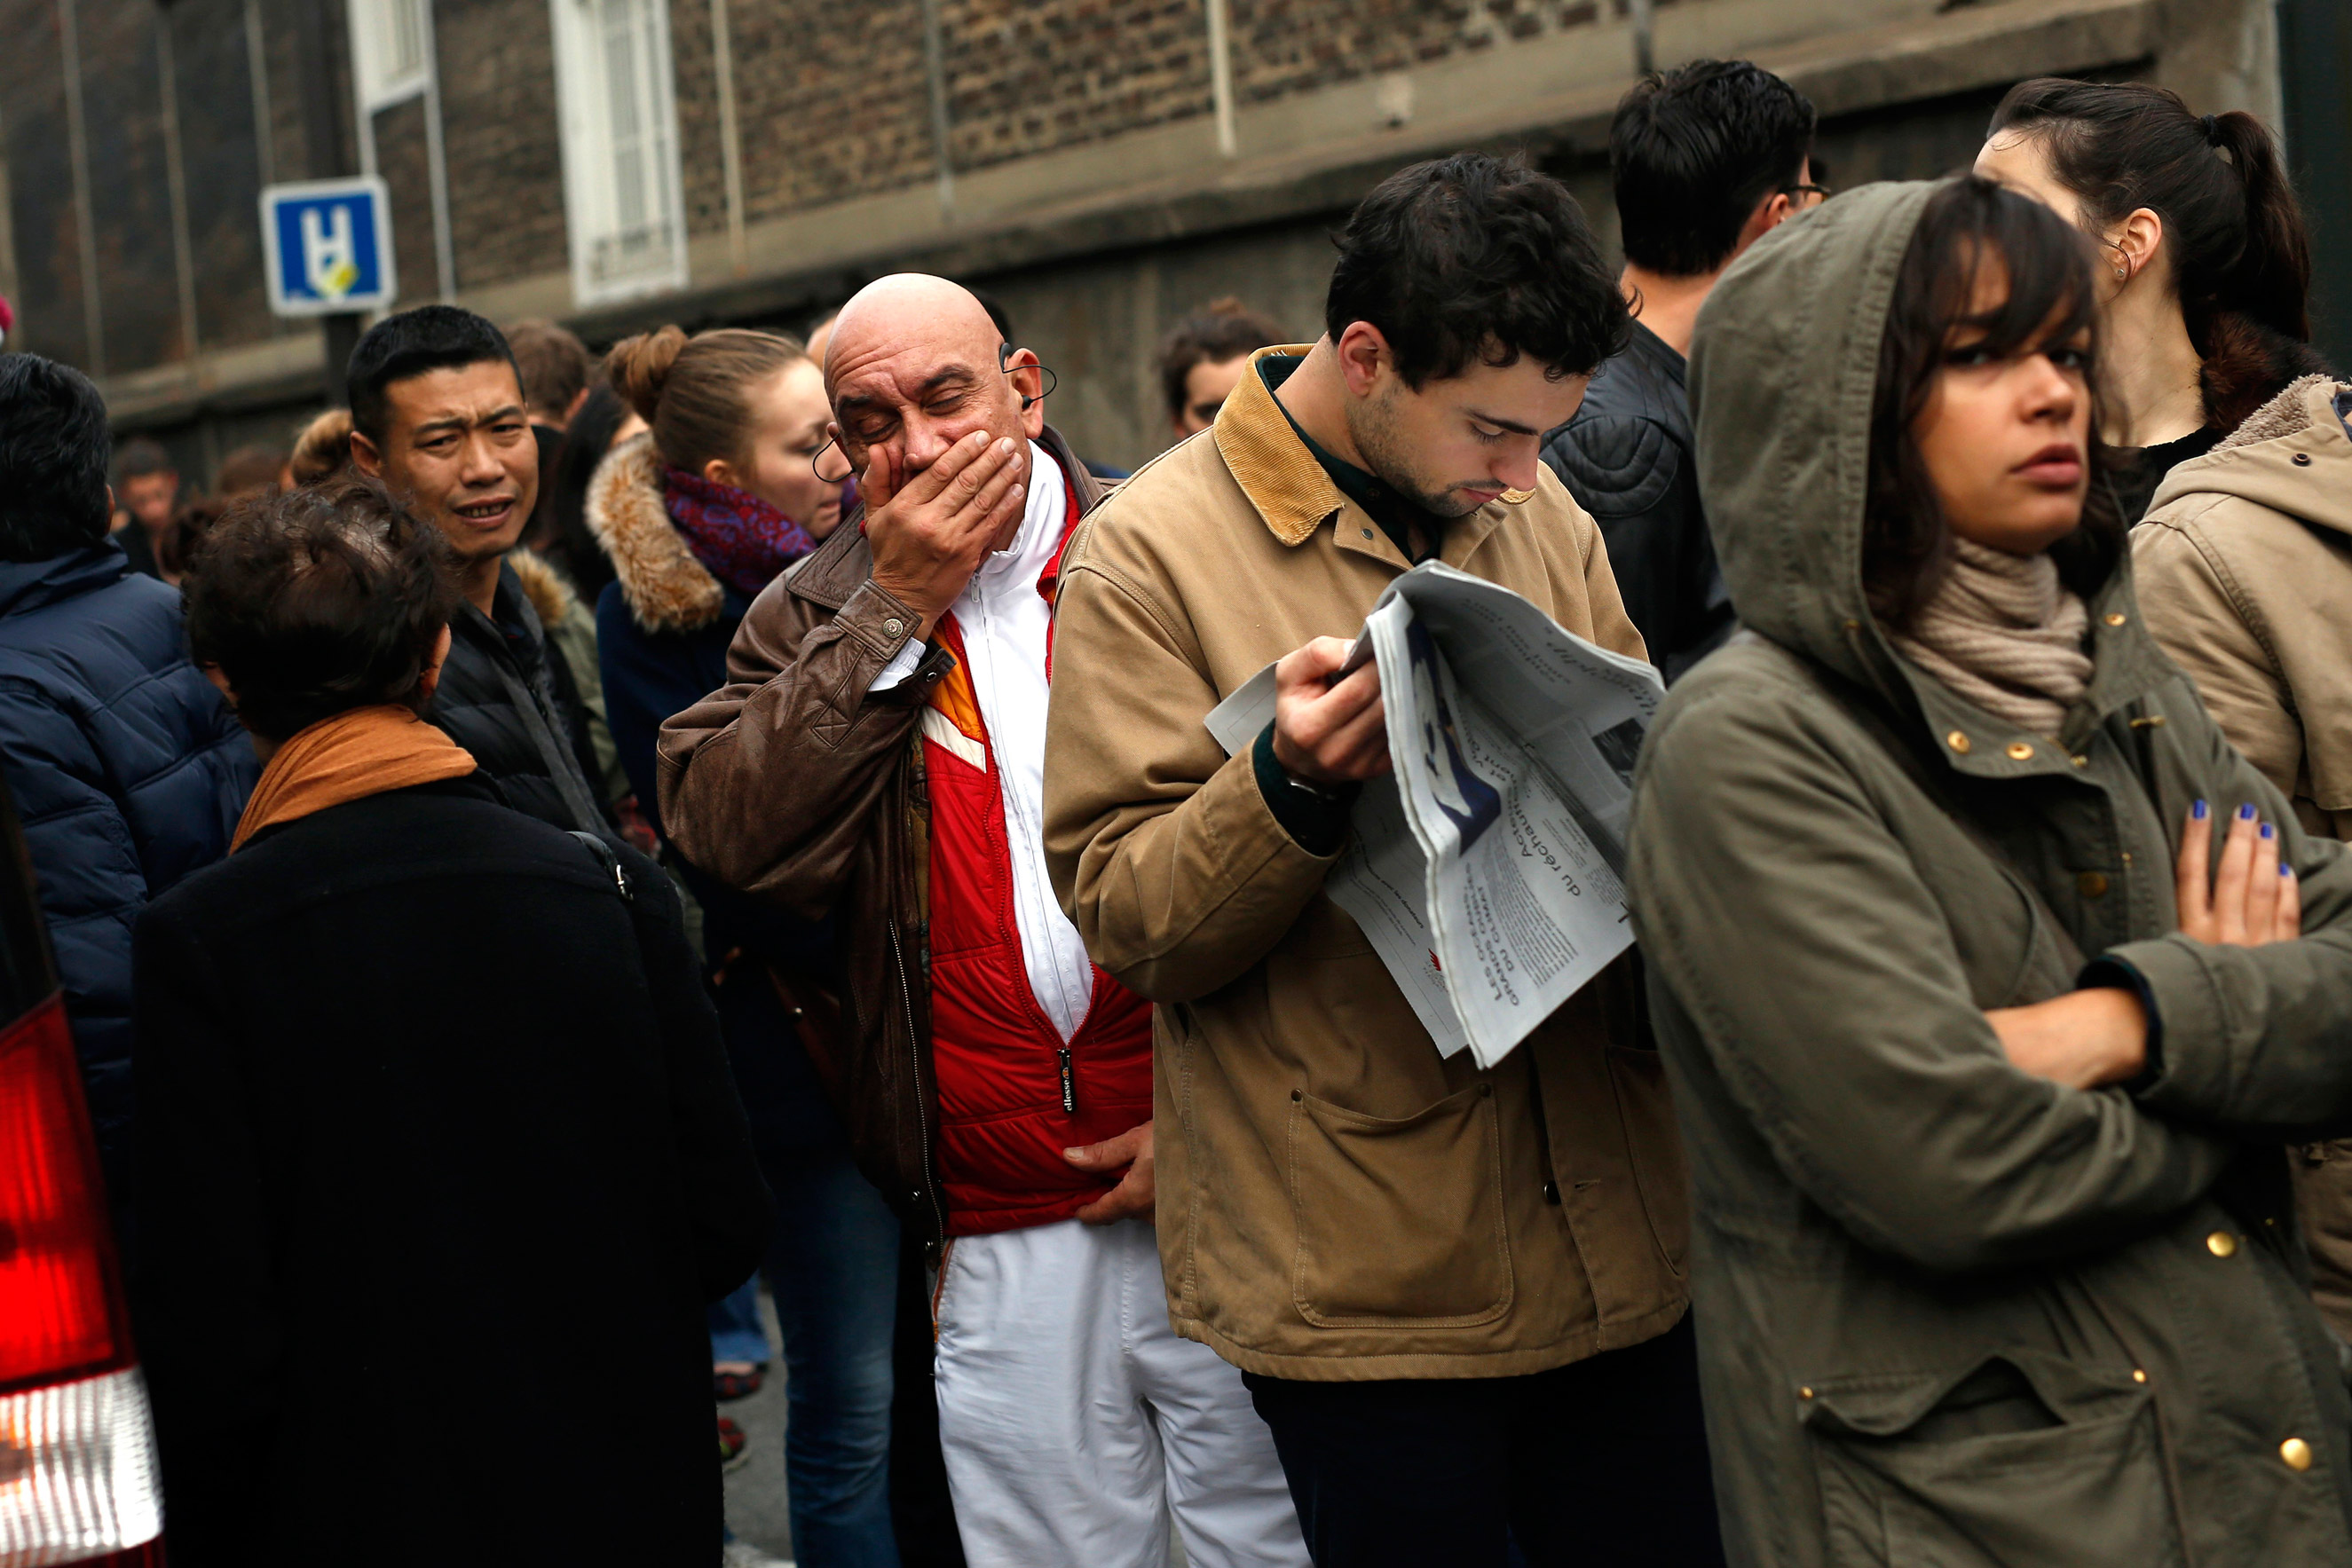 People line up to give blood at the St Louis hospital across the street from the Petit Cambodge restaurant in Paris on Nov. 14, 2015.